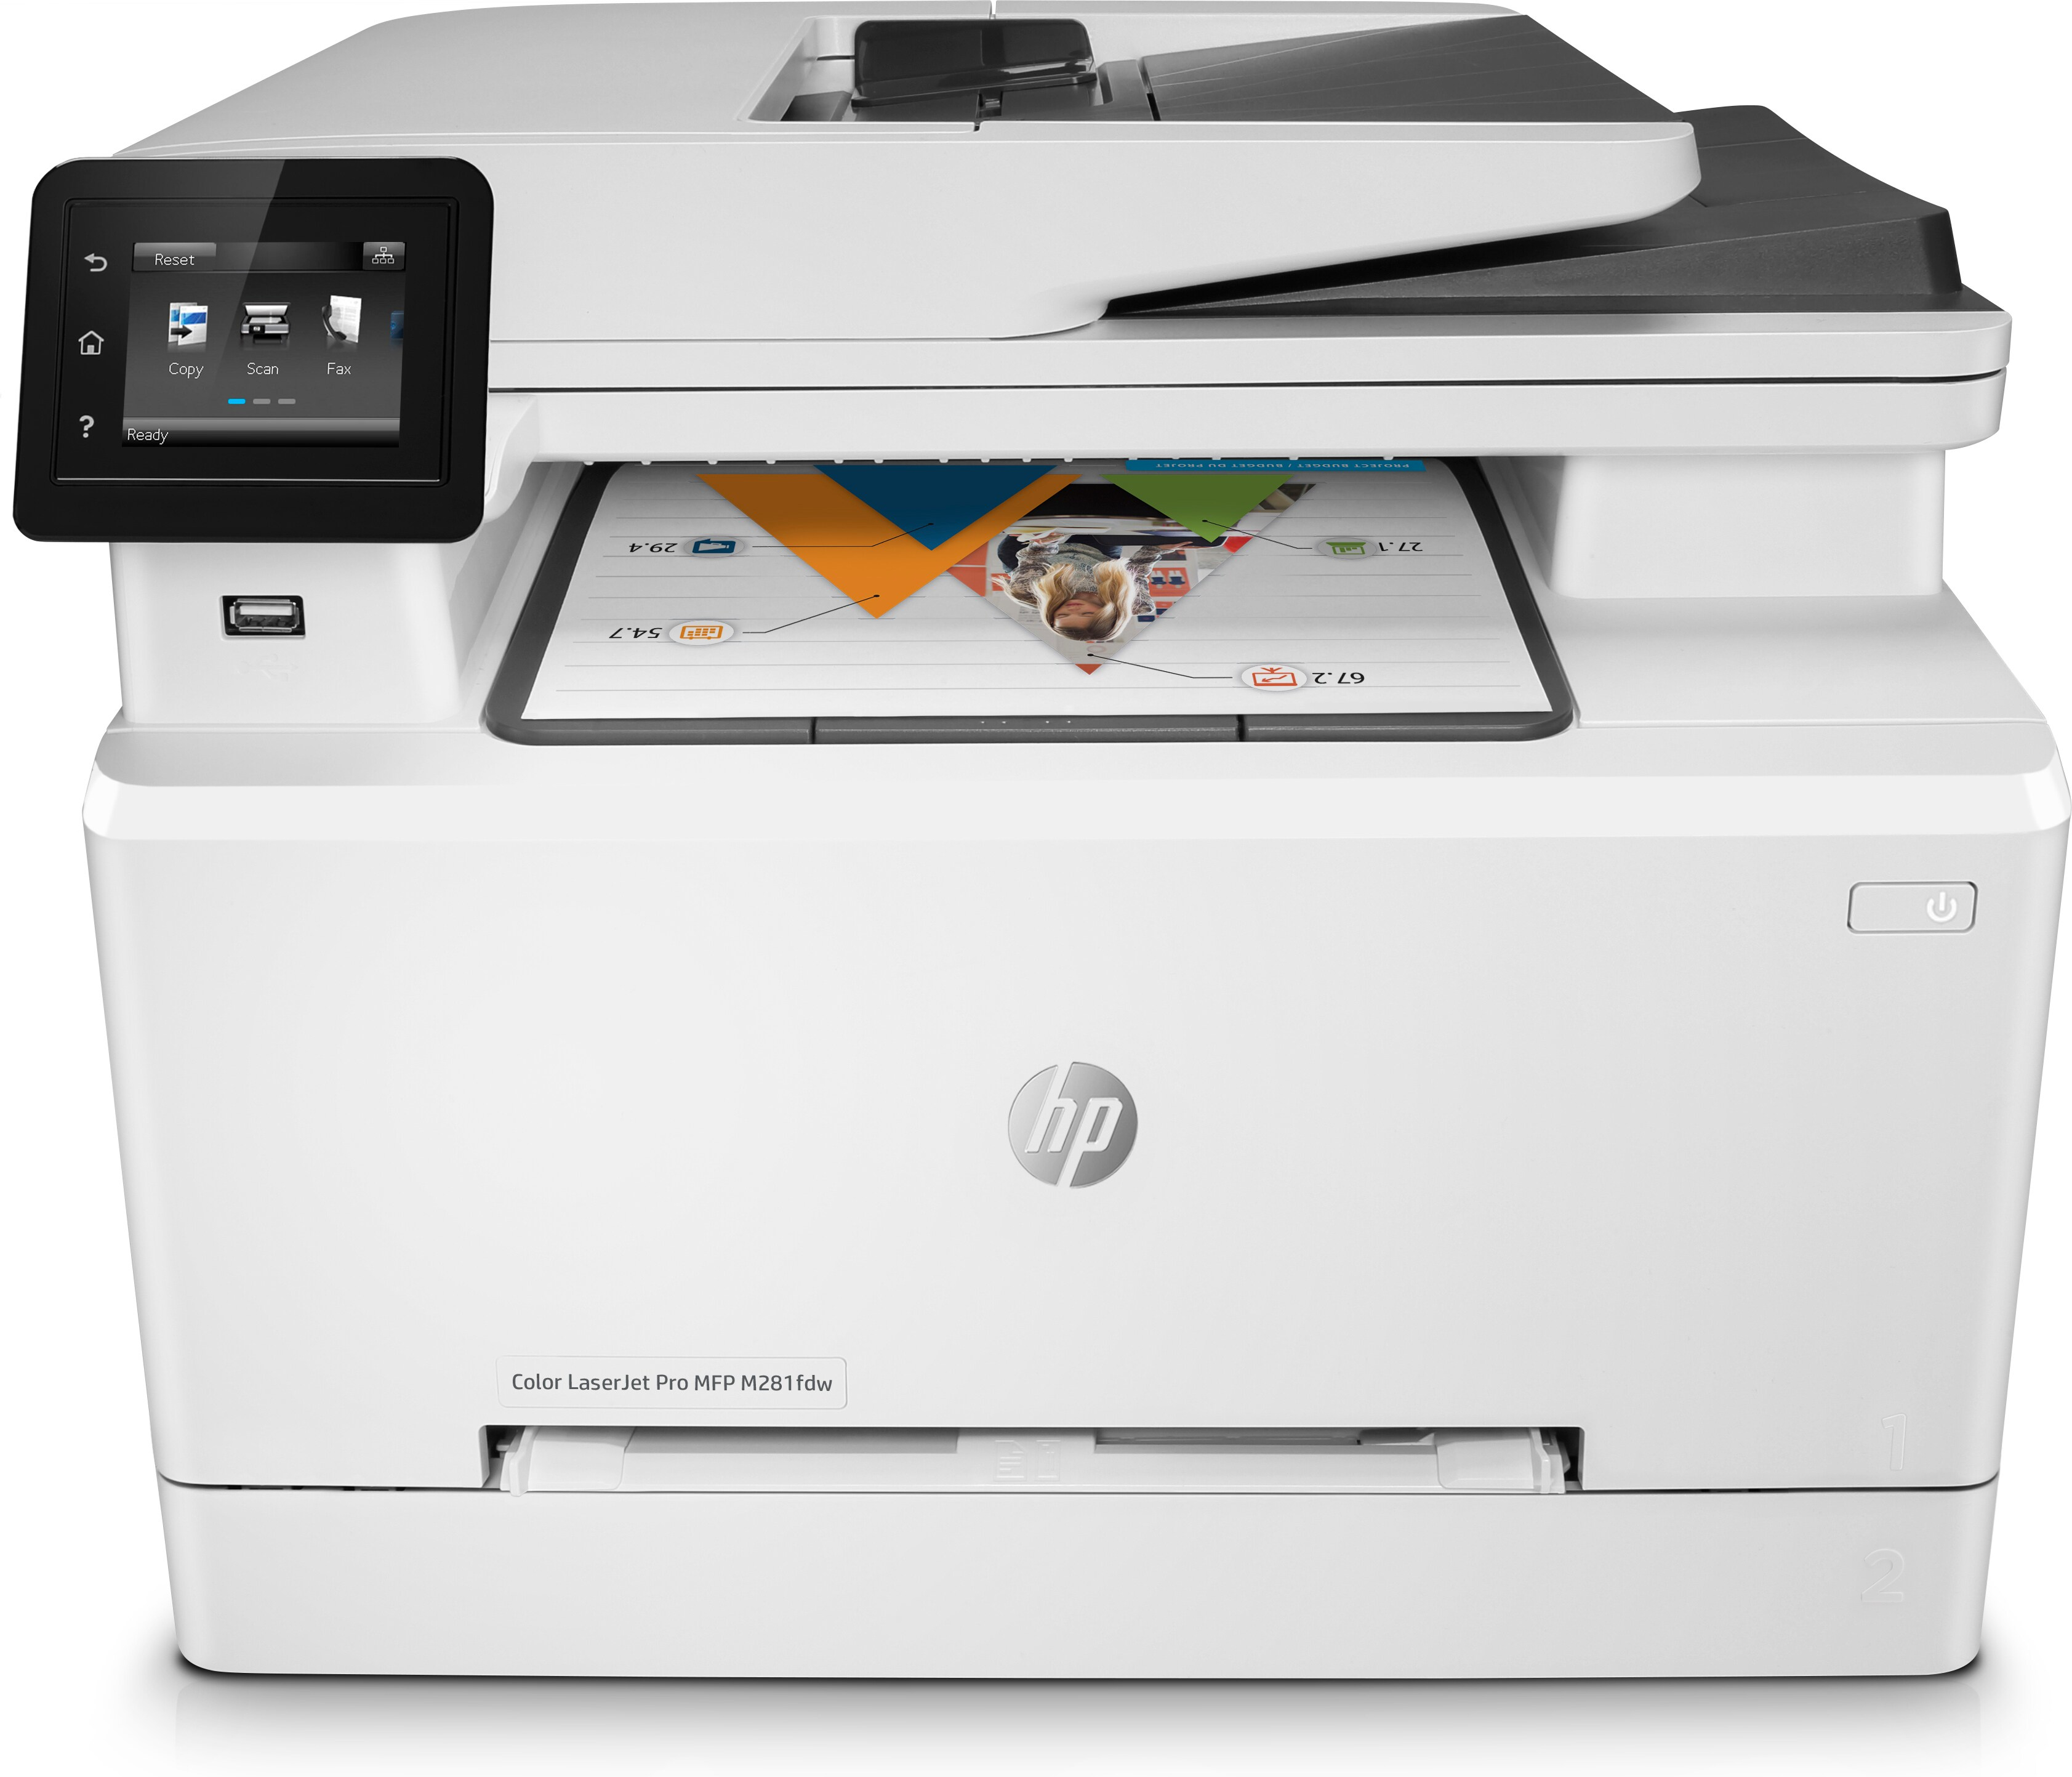 T6B82A HP Color Laserjet Pro MFP M281fdw A4 Colour Multifunction Laser Printer - Refurbished